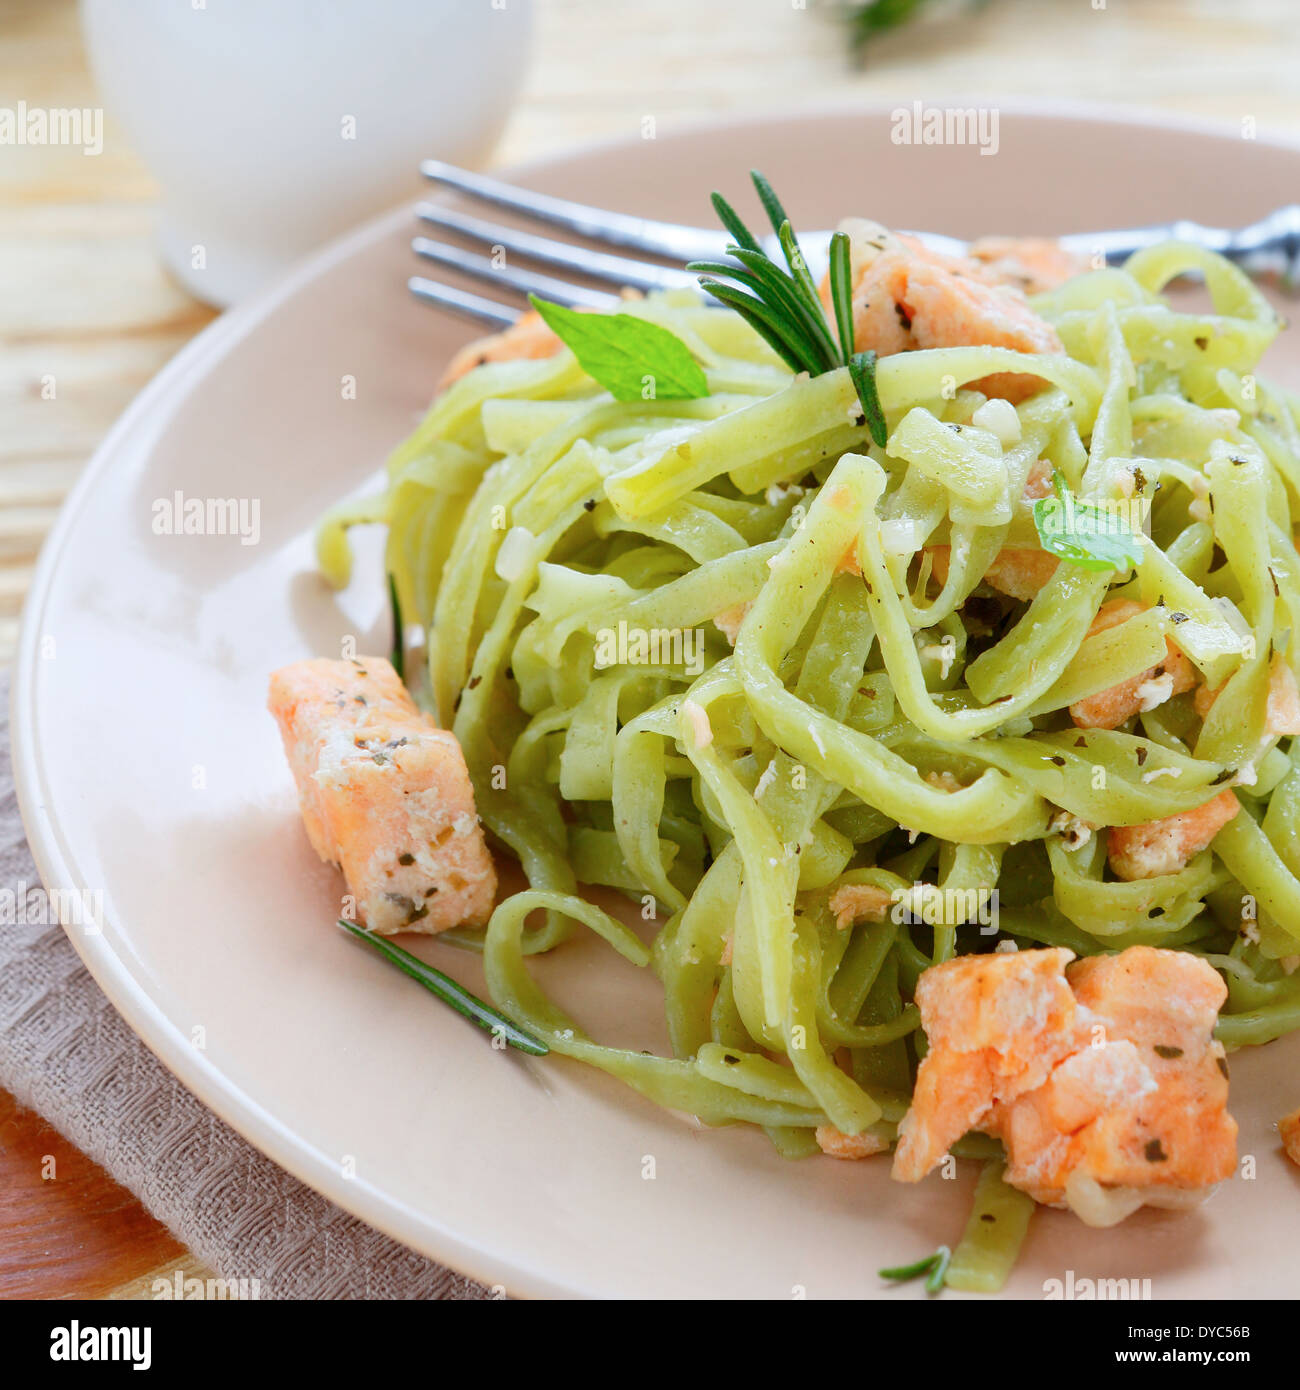 appetizing pasta with spinach salmon, food closeup - Stock Image